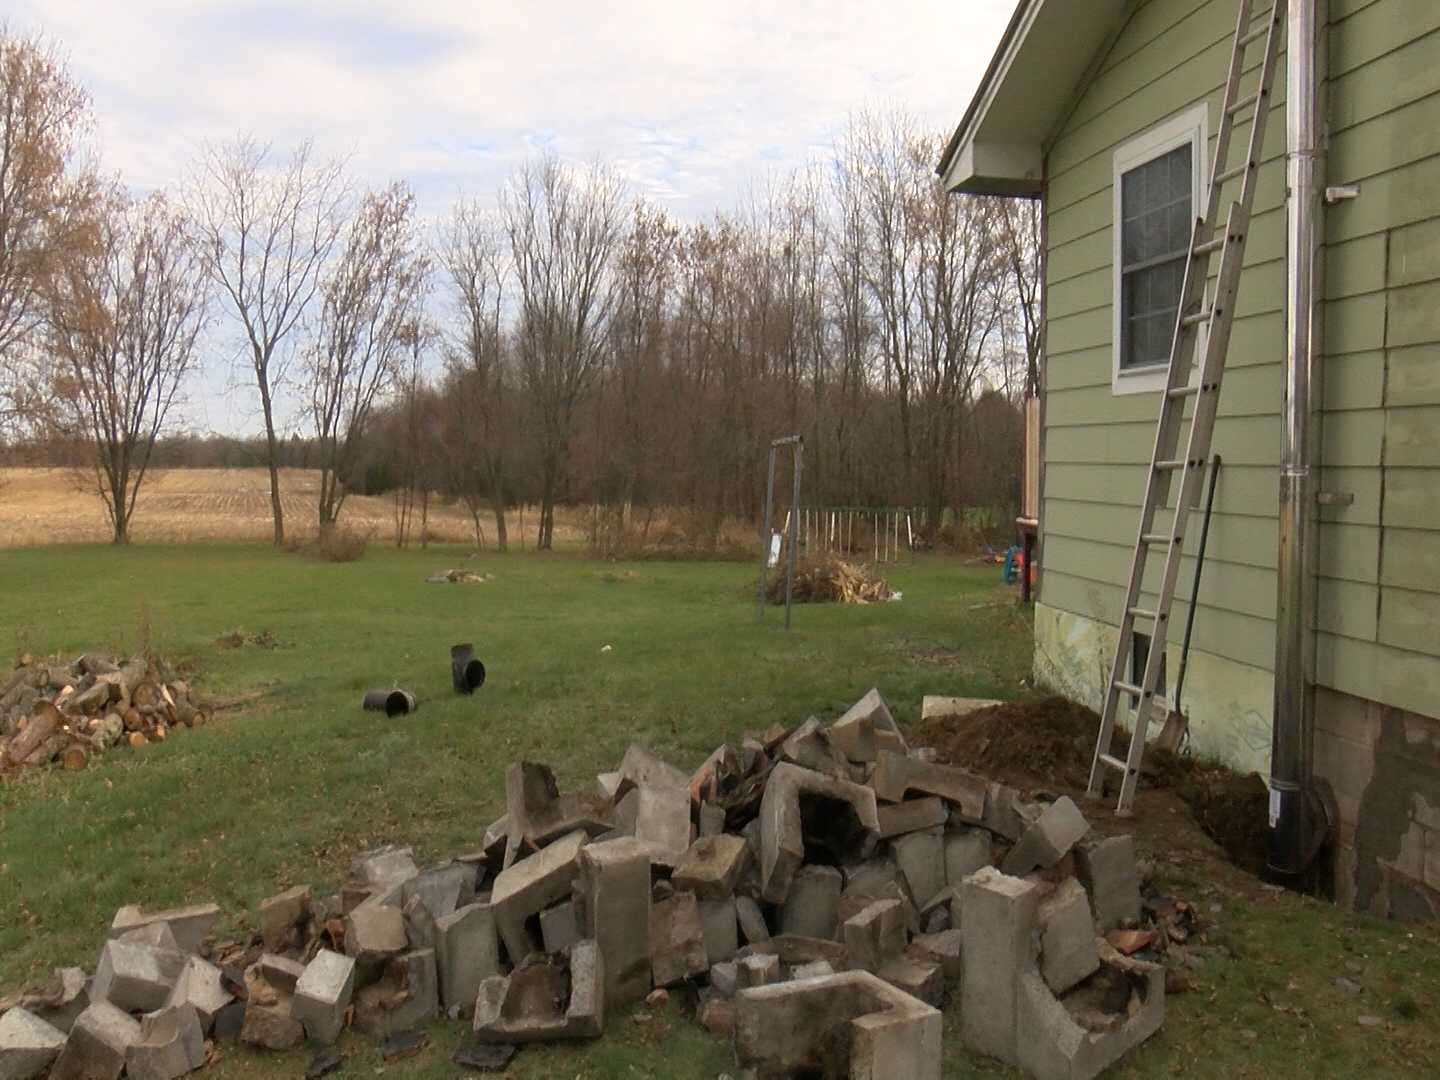 volunteer firefighter spots chimney fire saves family home